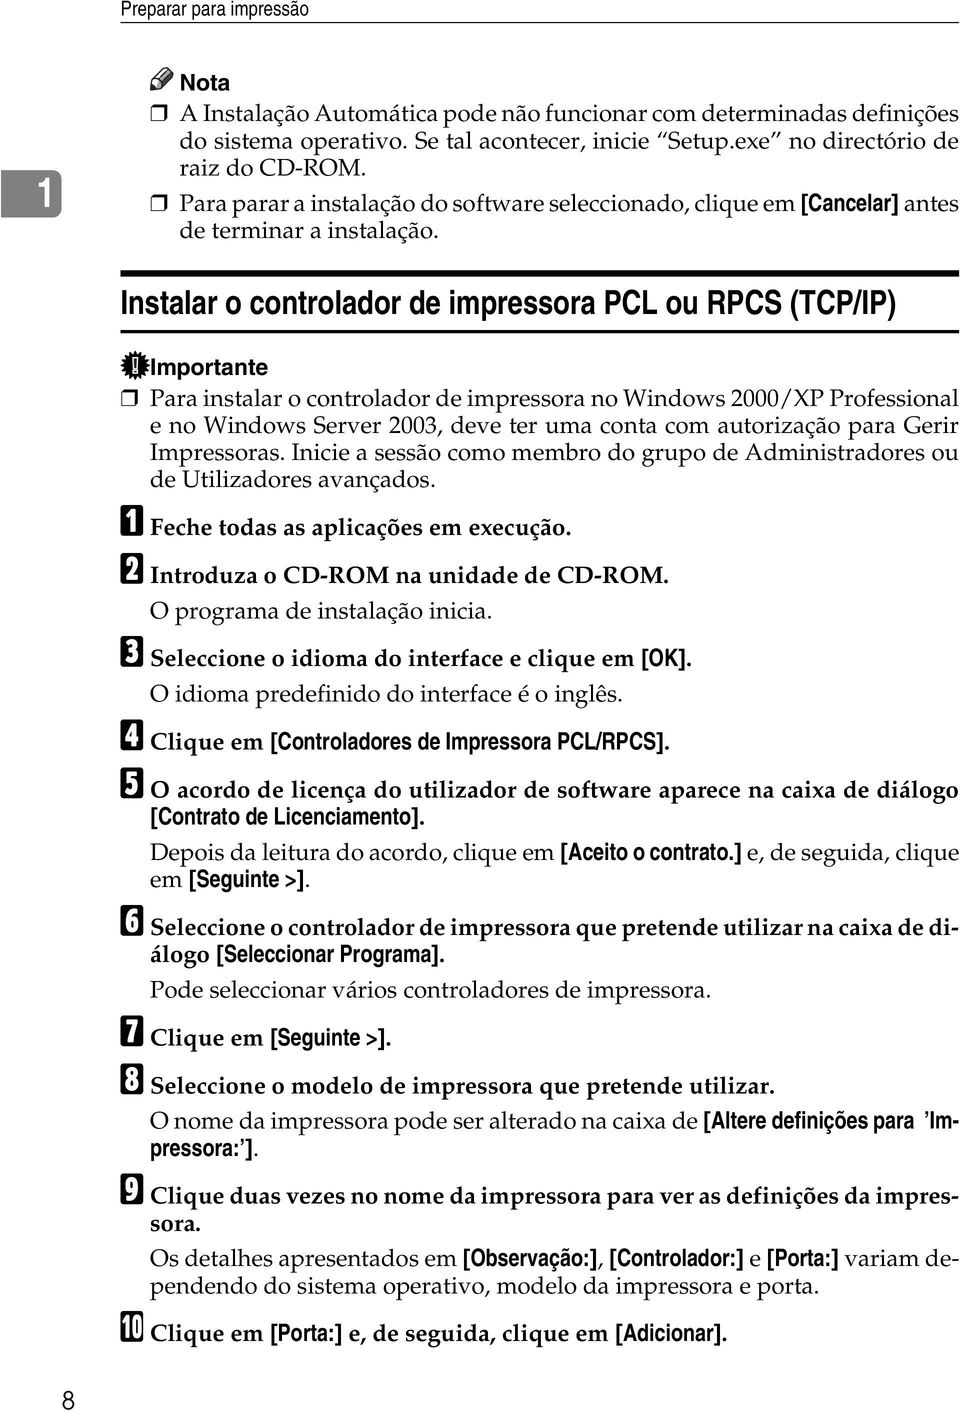 Instalar o controlador de impressora PCL ou RPCS (TCP/IP) Importante Para instalar o controlador de impressora no Windows 2000/XP Professional e no Windows Server 2003, deve ter uma conta com